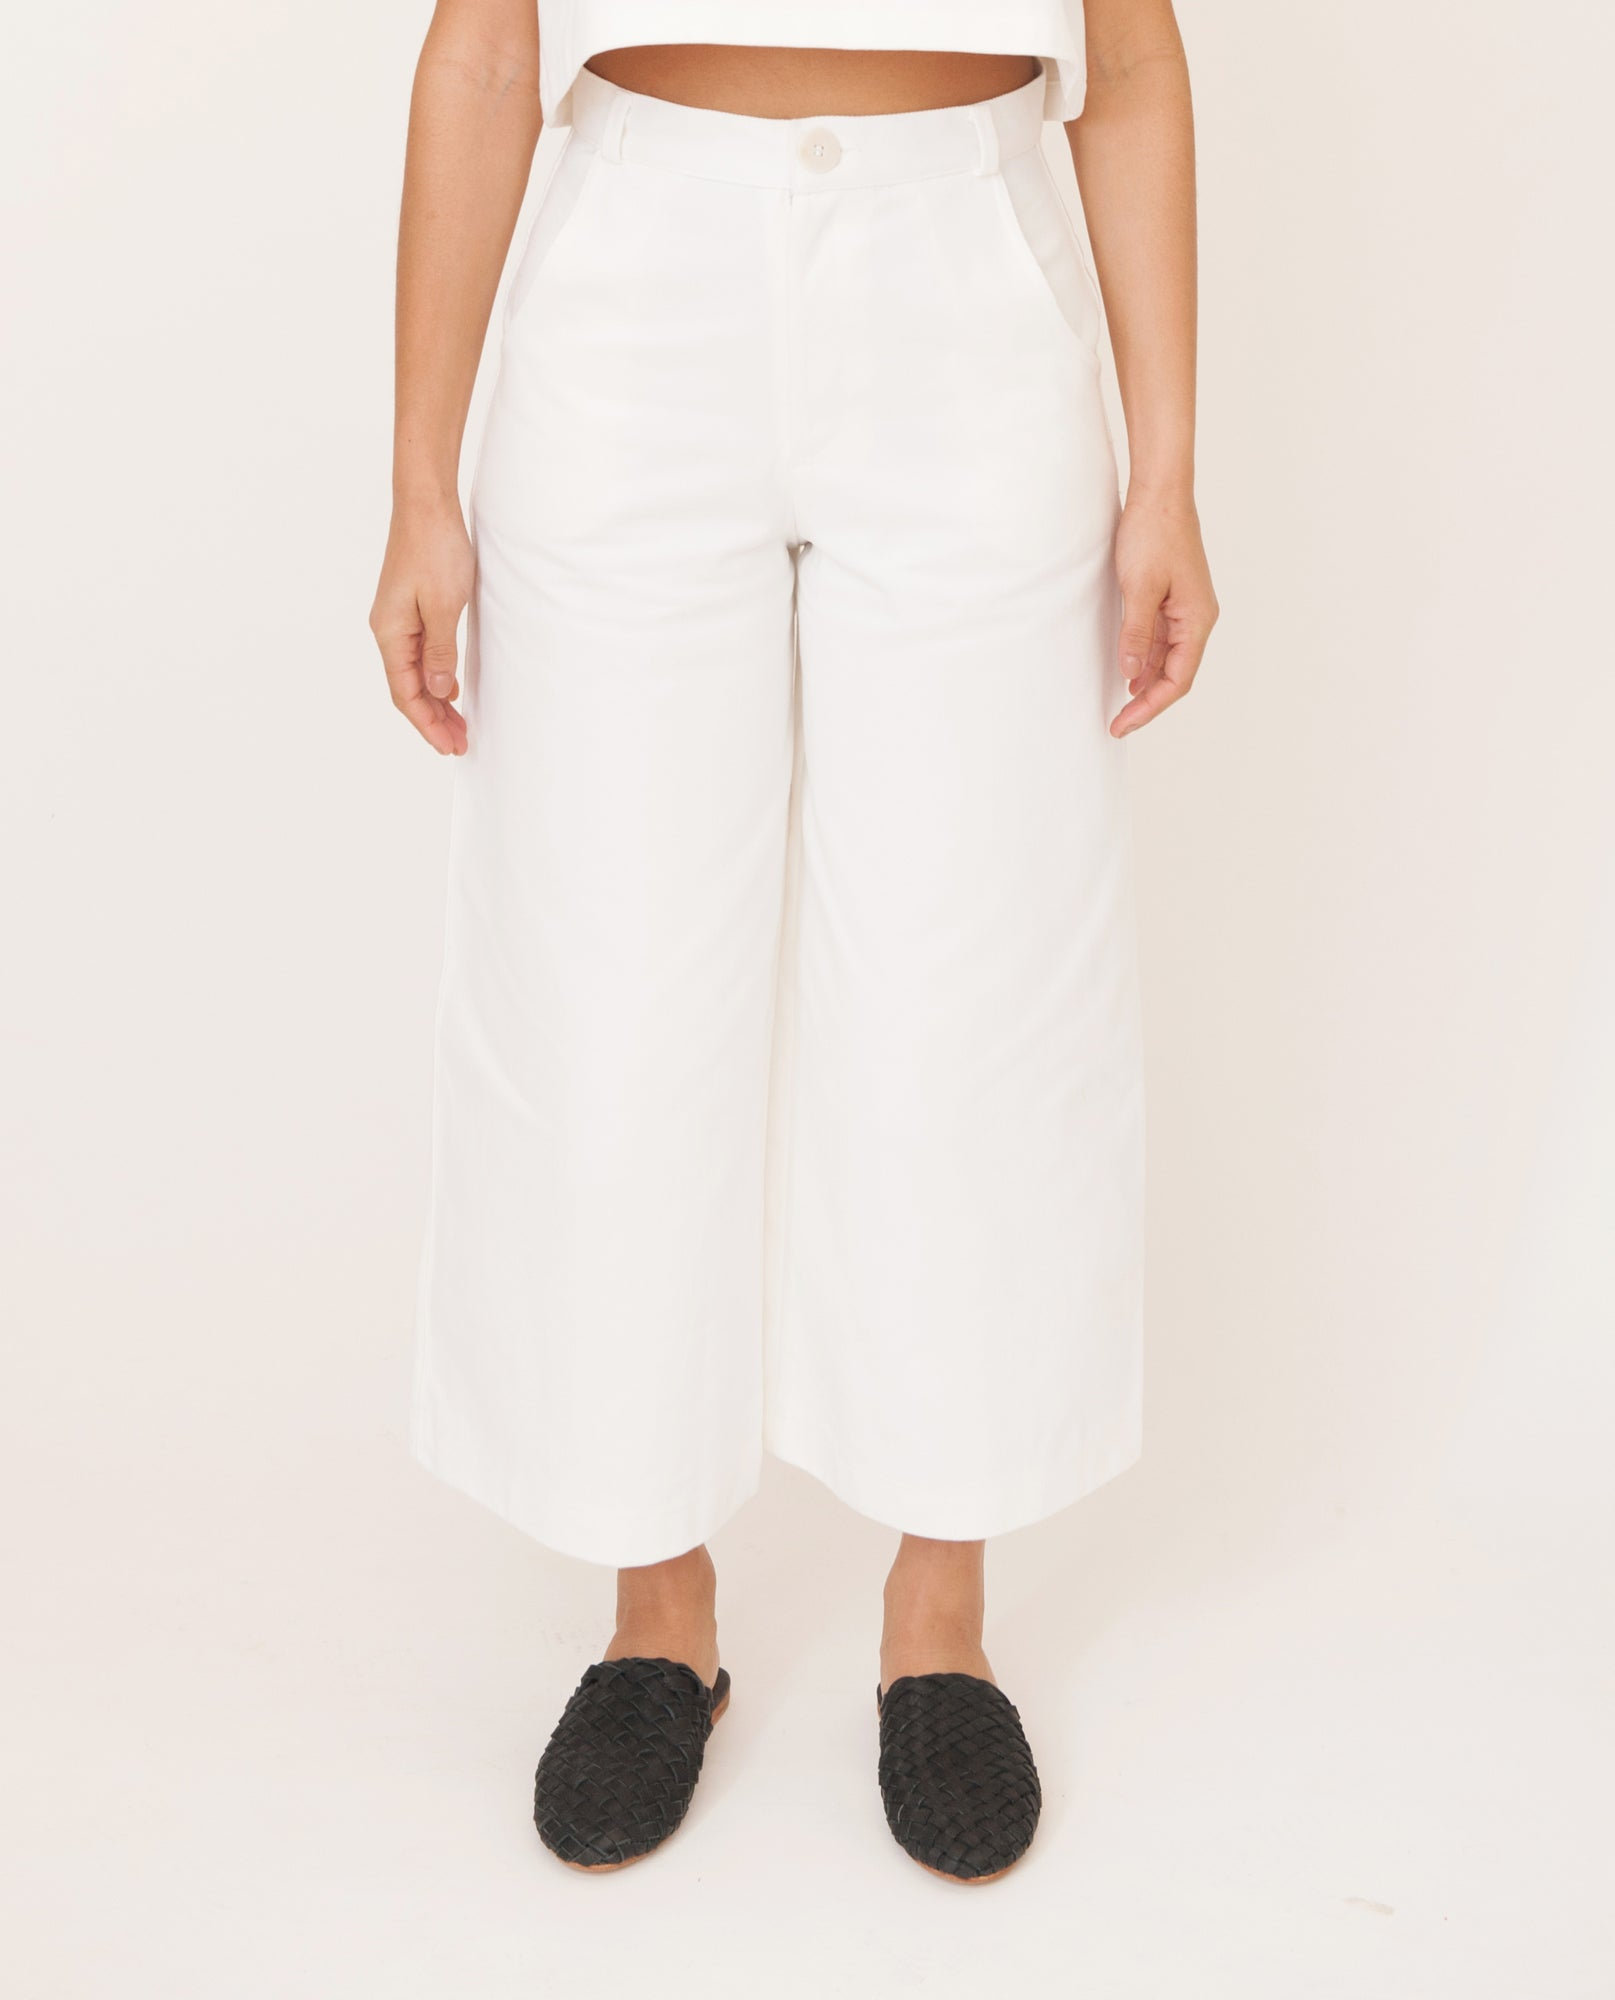 TRACEY-MAY Cotton Denim Culotte Trousers In White